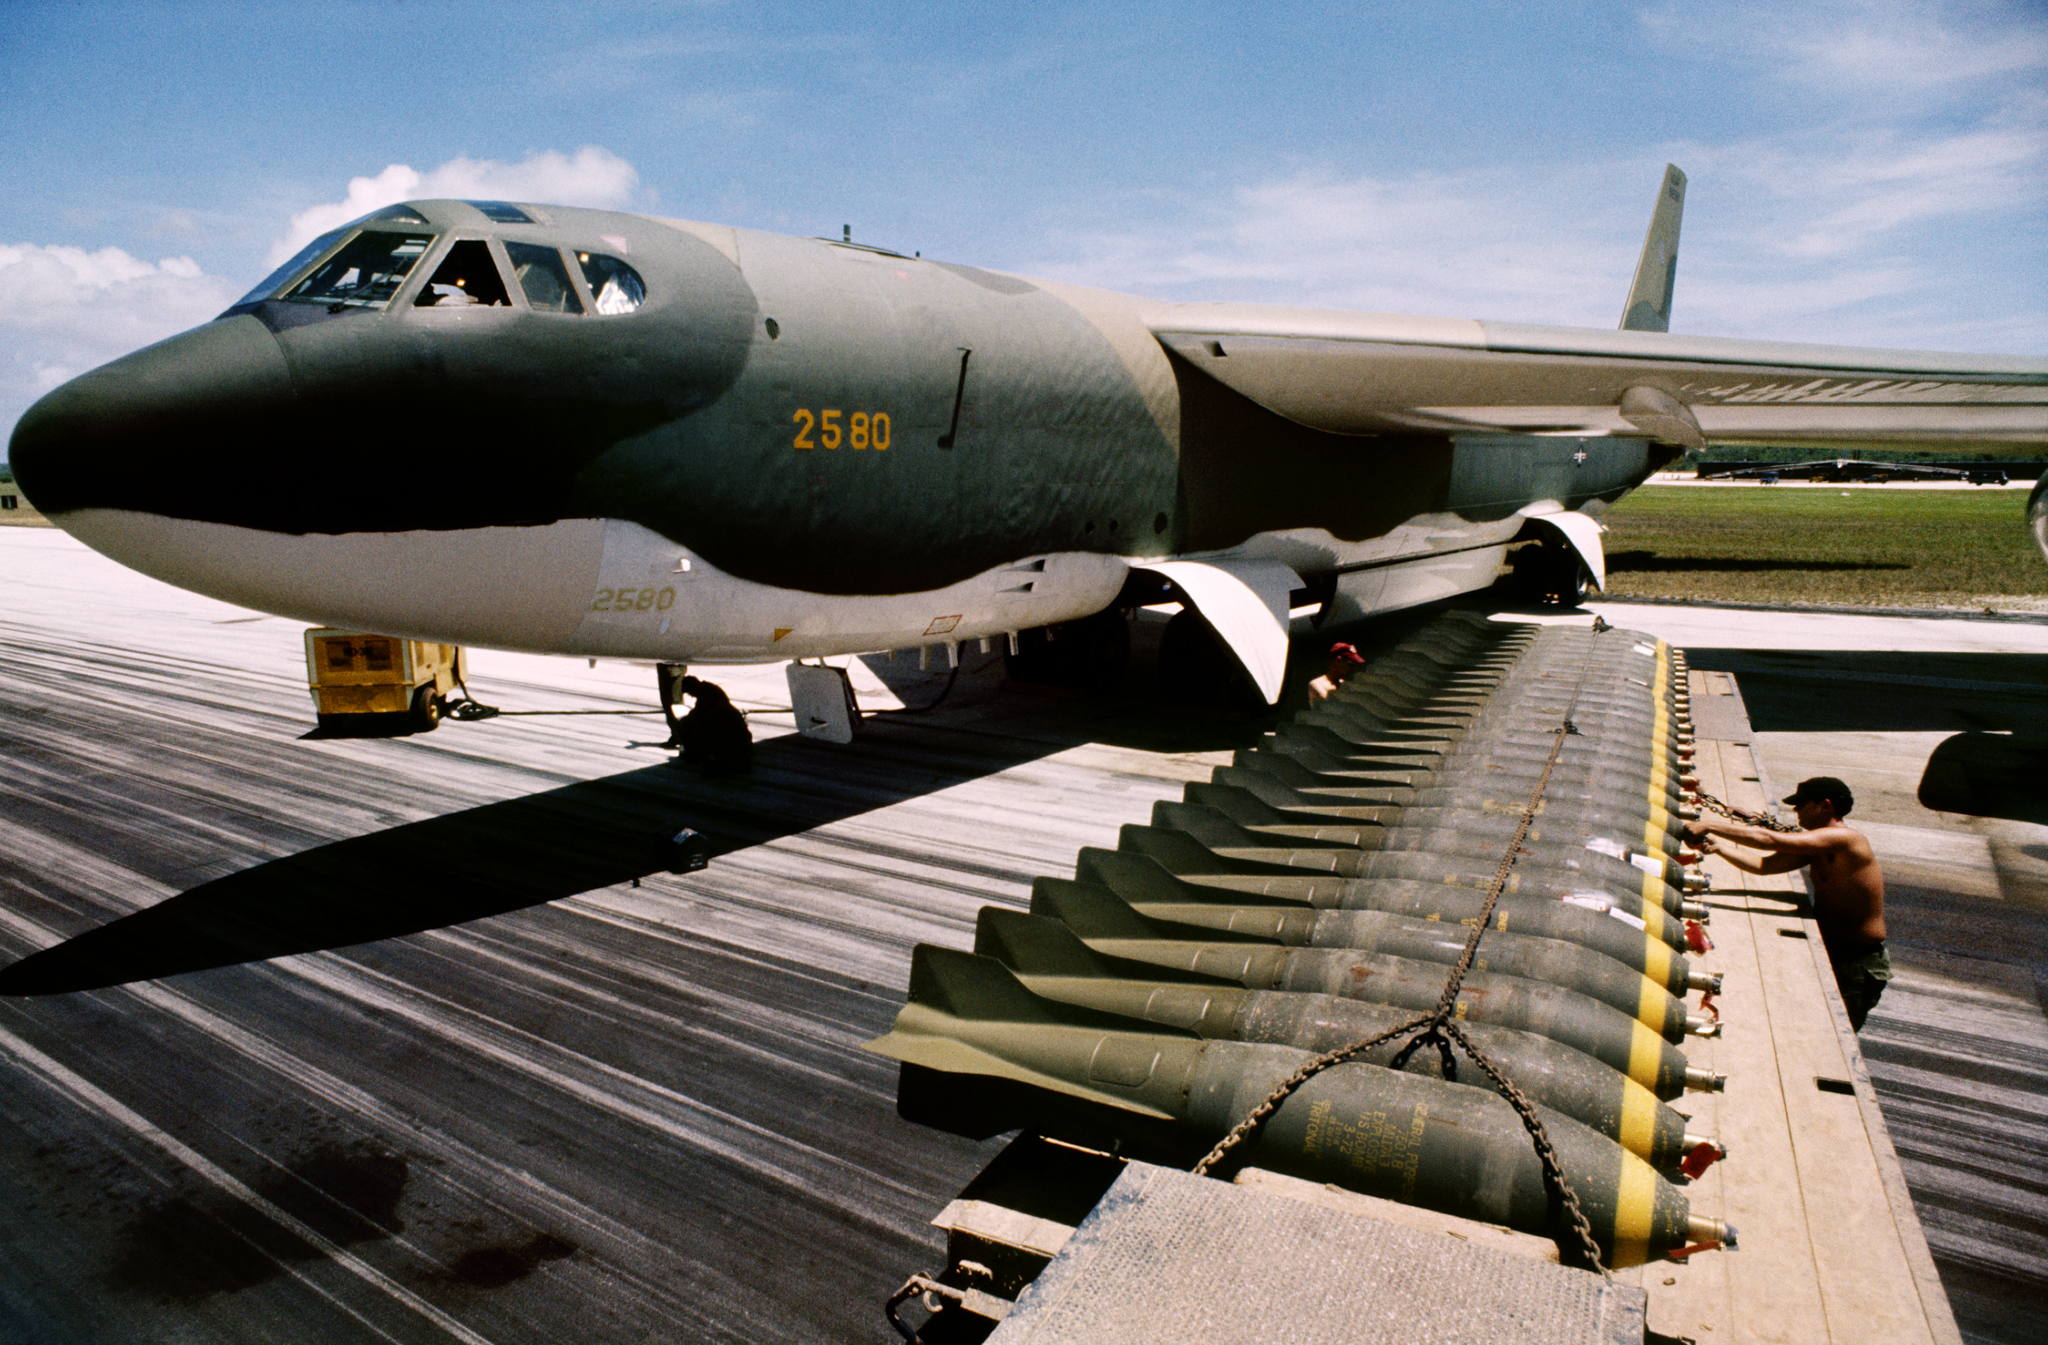 A member of US Air Force loads bombs onto a B-52 at Anderson Air Force Base in Guam in preparation for bombing missions over Vietnam during Operation Arc Light. June, 1972 © Jean-Pierre Laffont